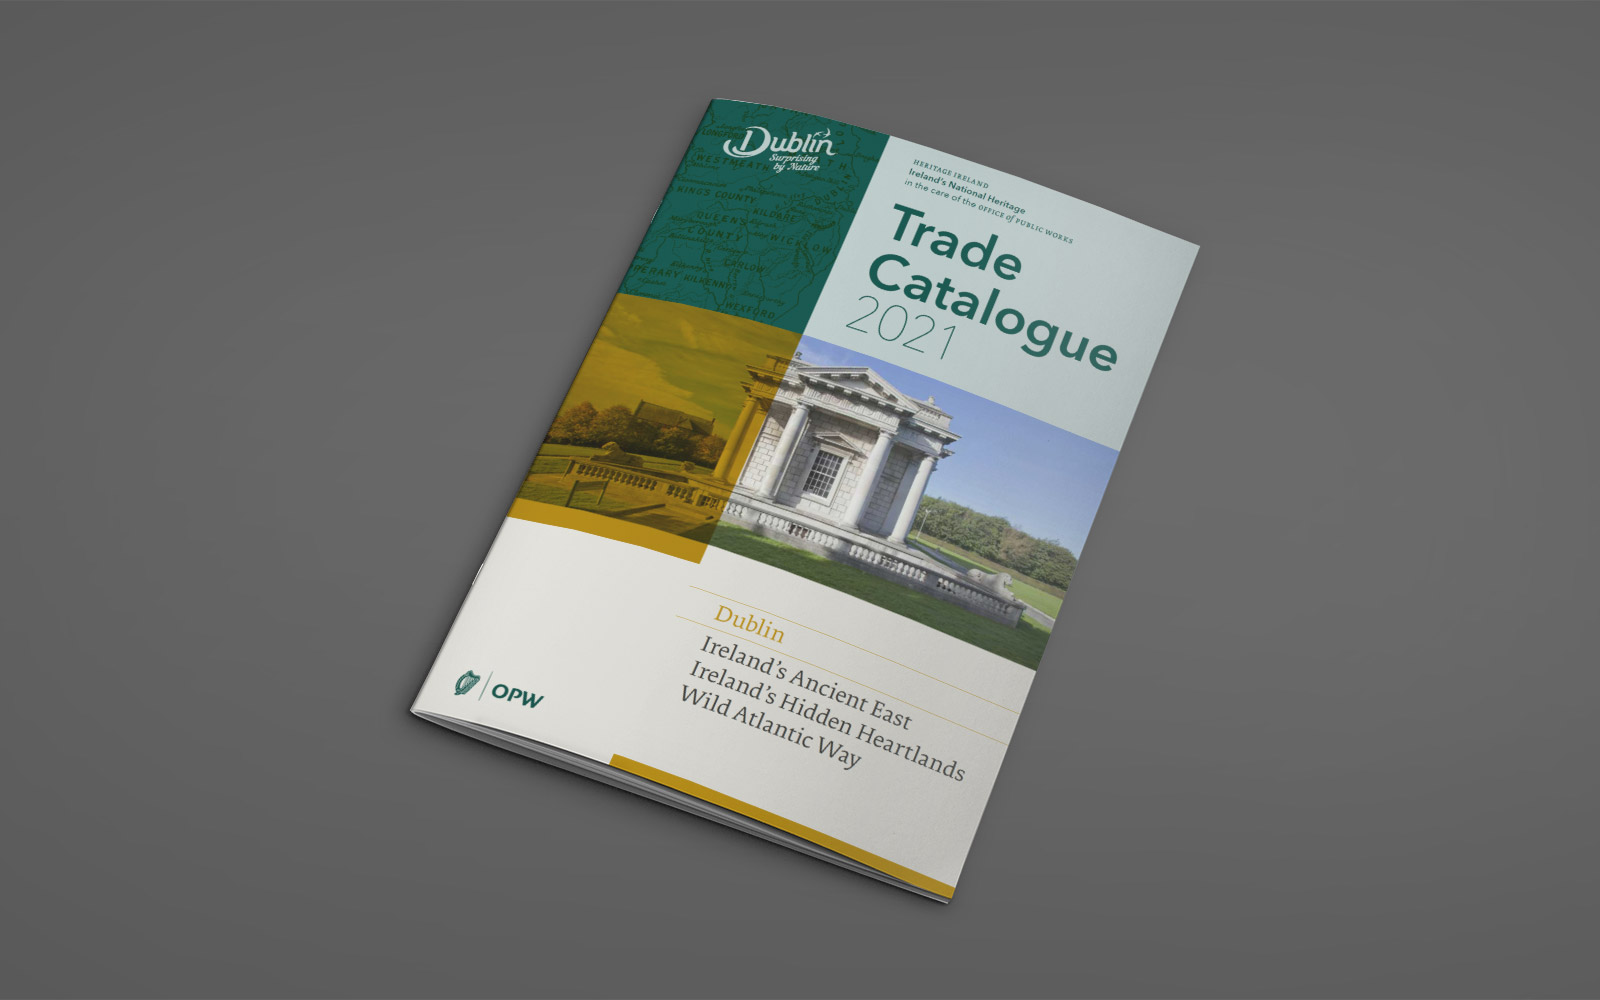 OPW Heritage Trade Catalogue Dublin 2021